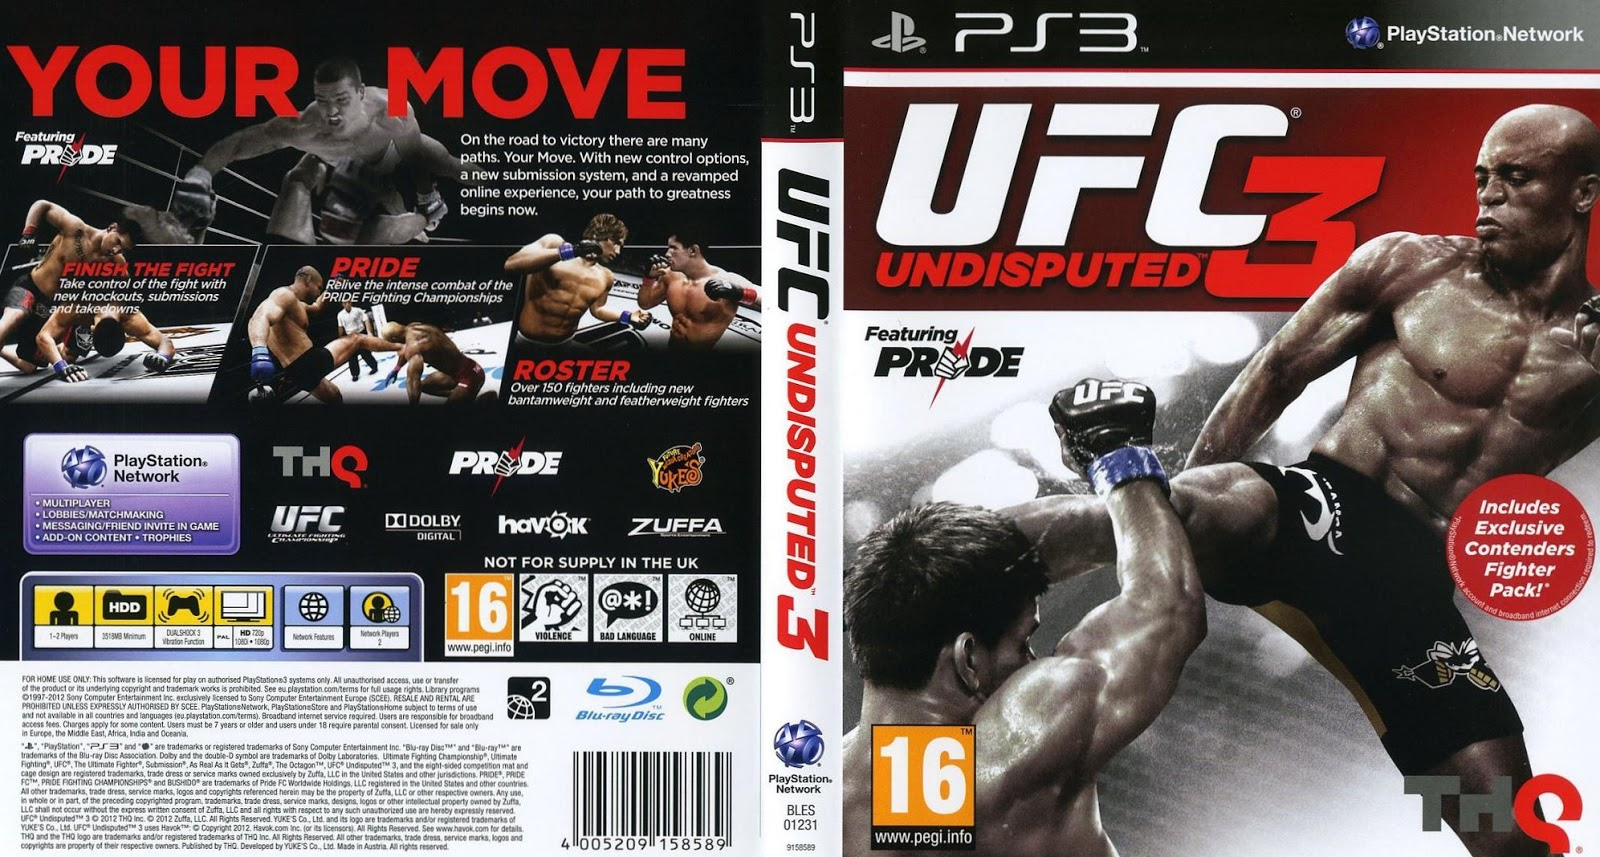 Ufc undisputed 3 online pass free download on xbox 360 ps3.